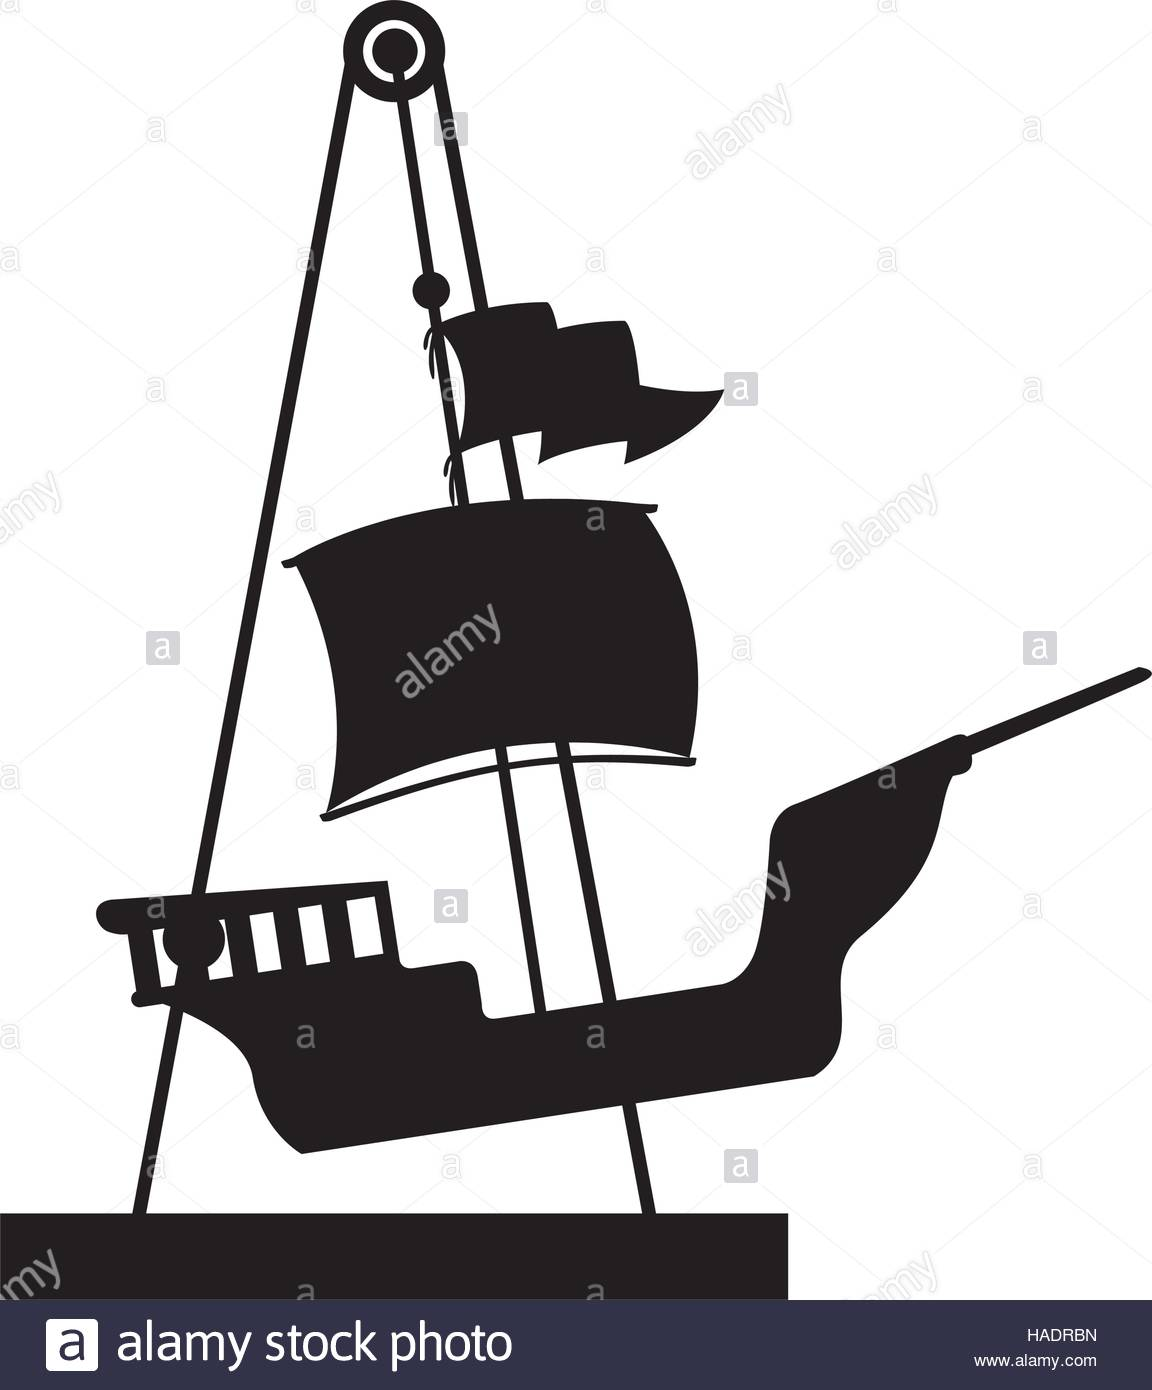 1152x1390 Silhouette Amusement Park Pirate Ship Line Icon Vector